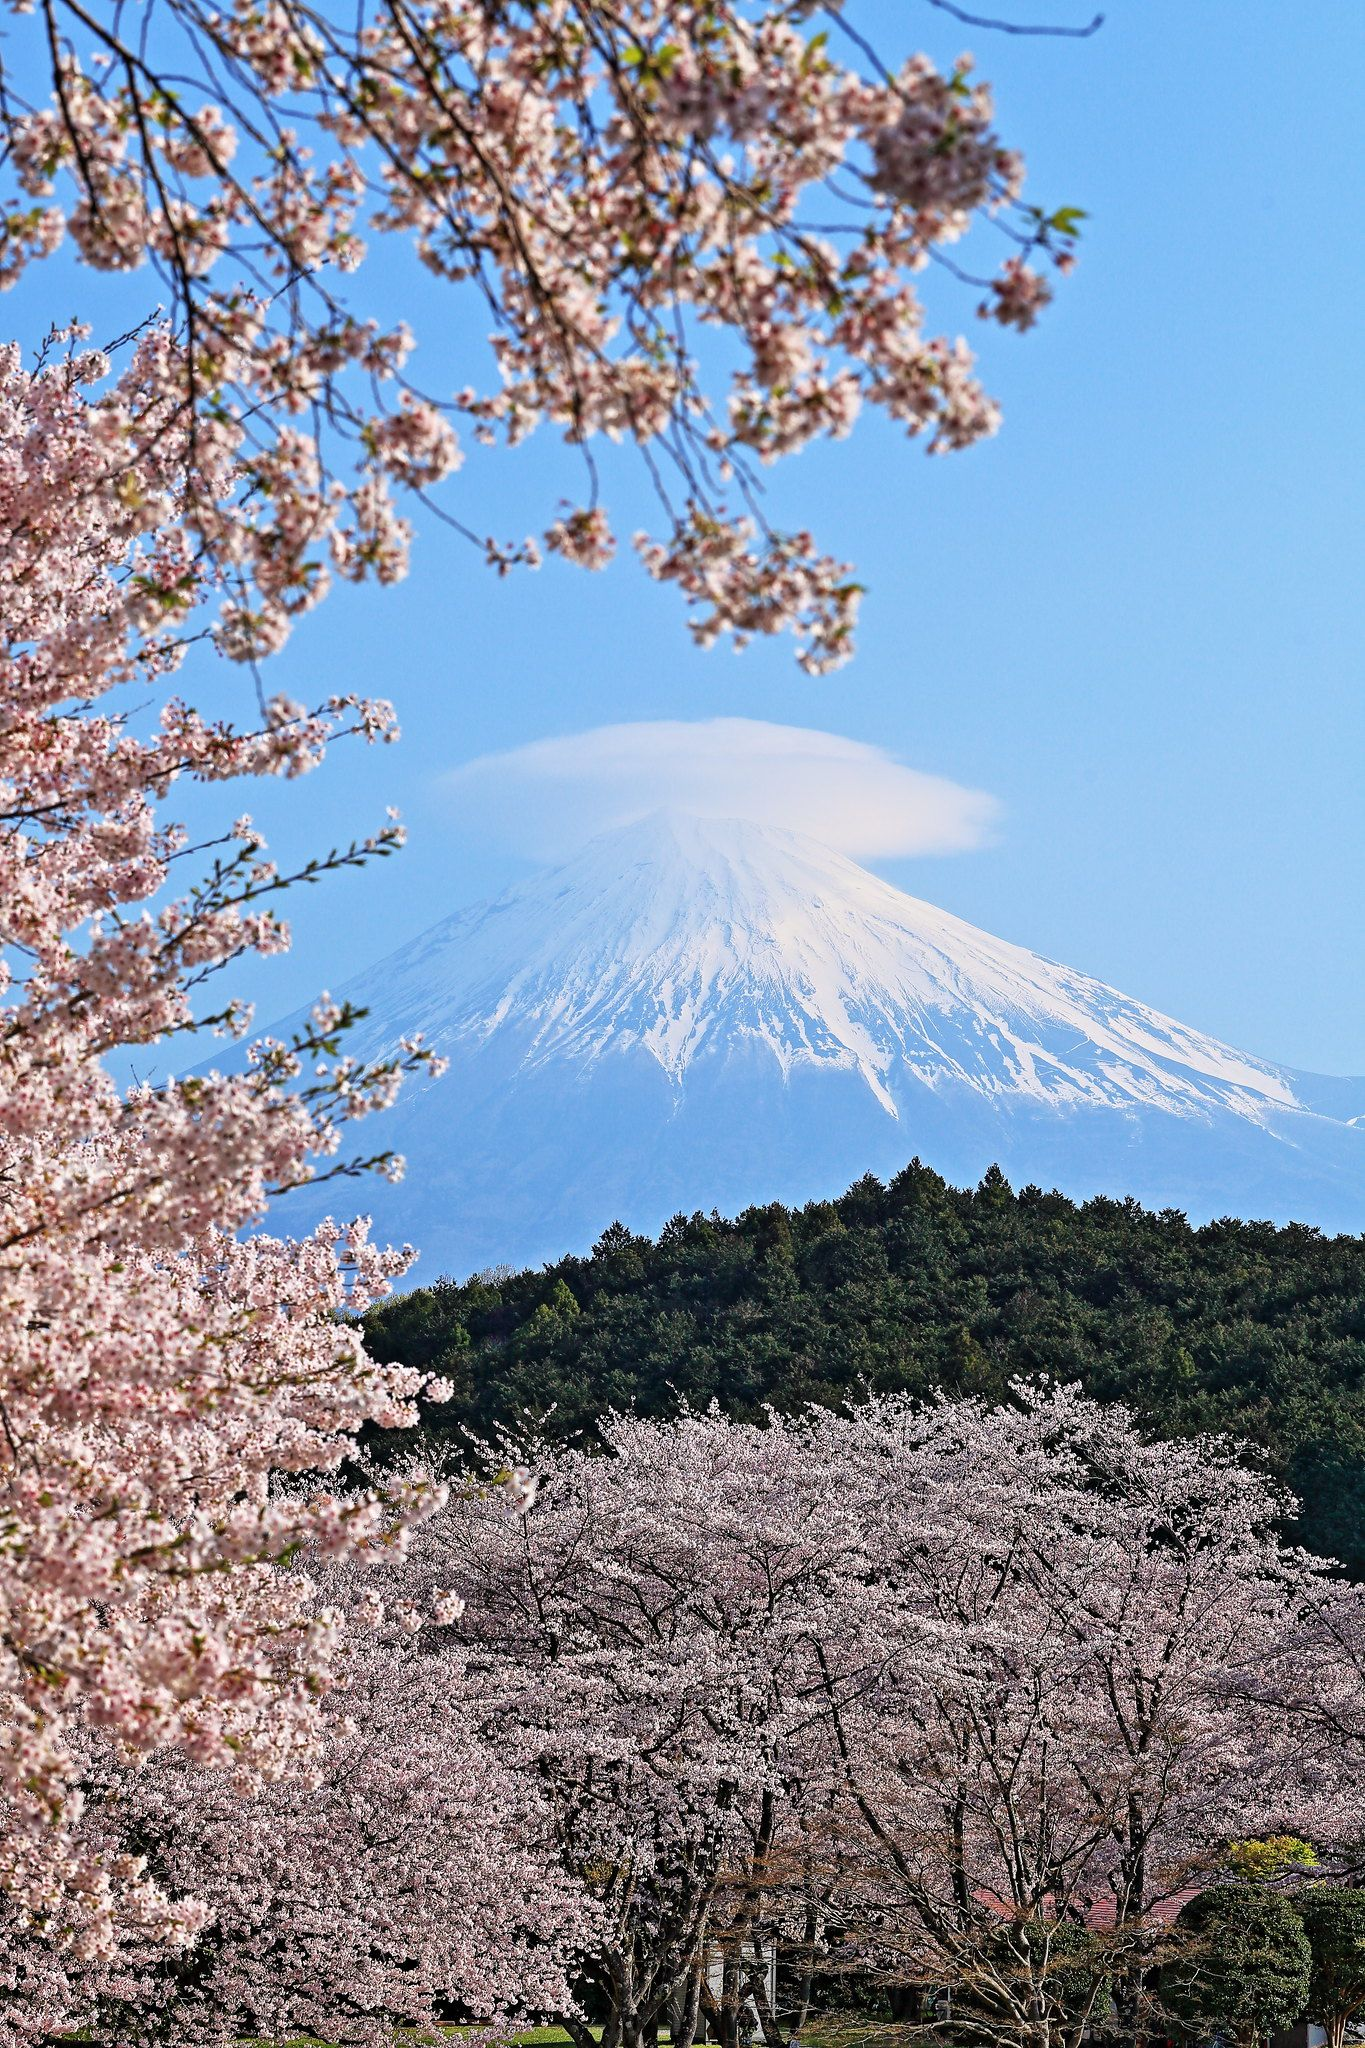 The Cherry Blossoms Are In Full Bloom Blossom Bloom Cherry Blossom